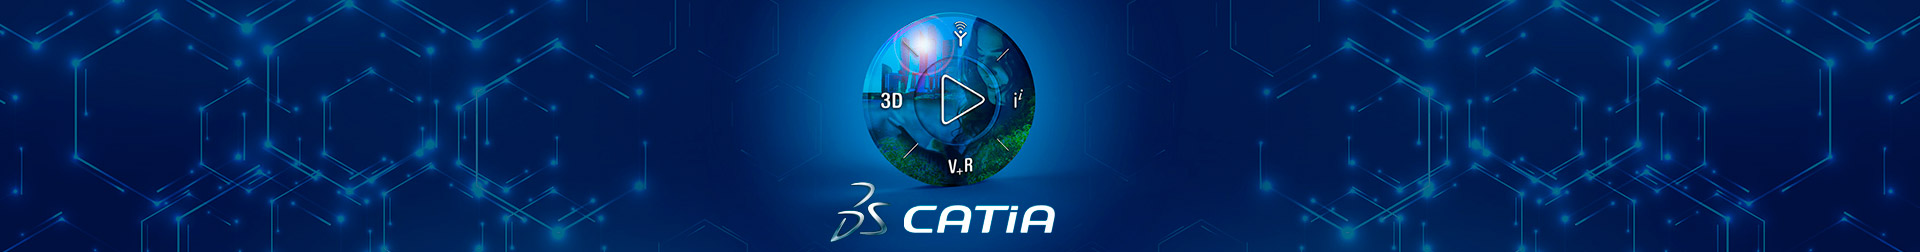 CATIA - HAYCAD INFOTECH - Engineering and business solutions